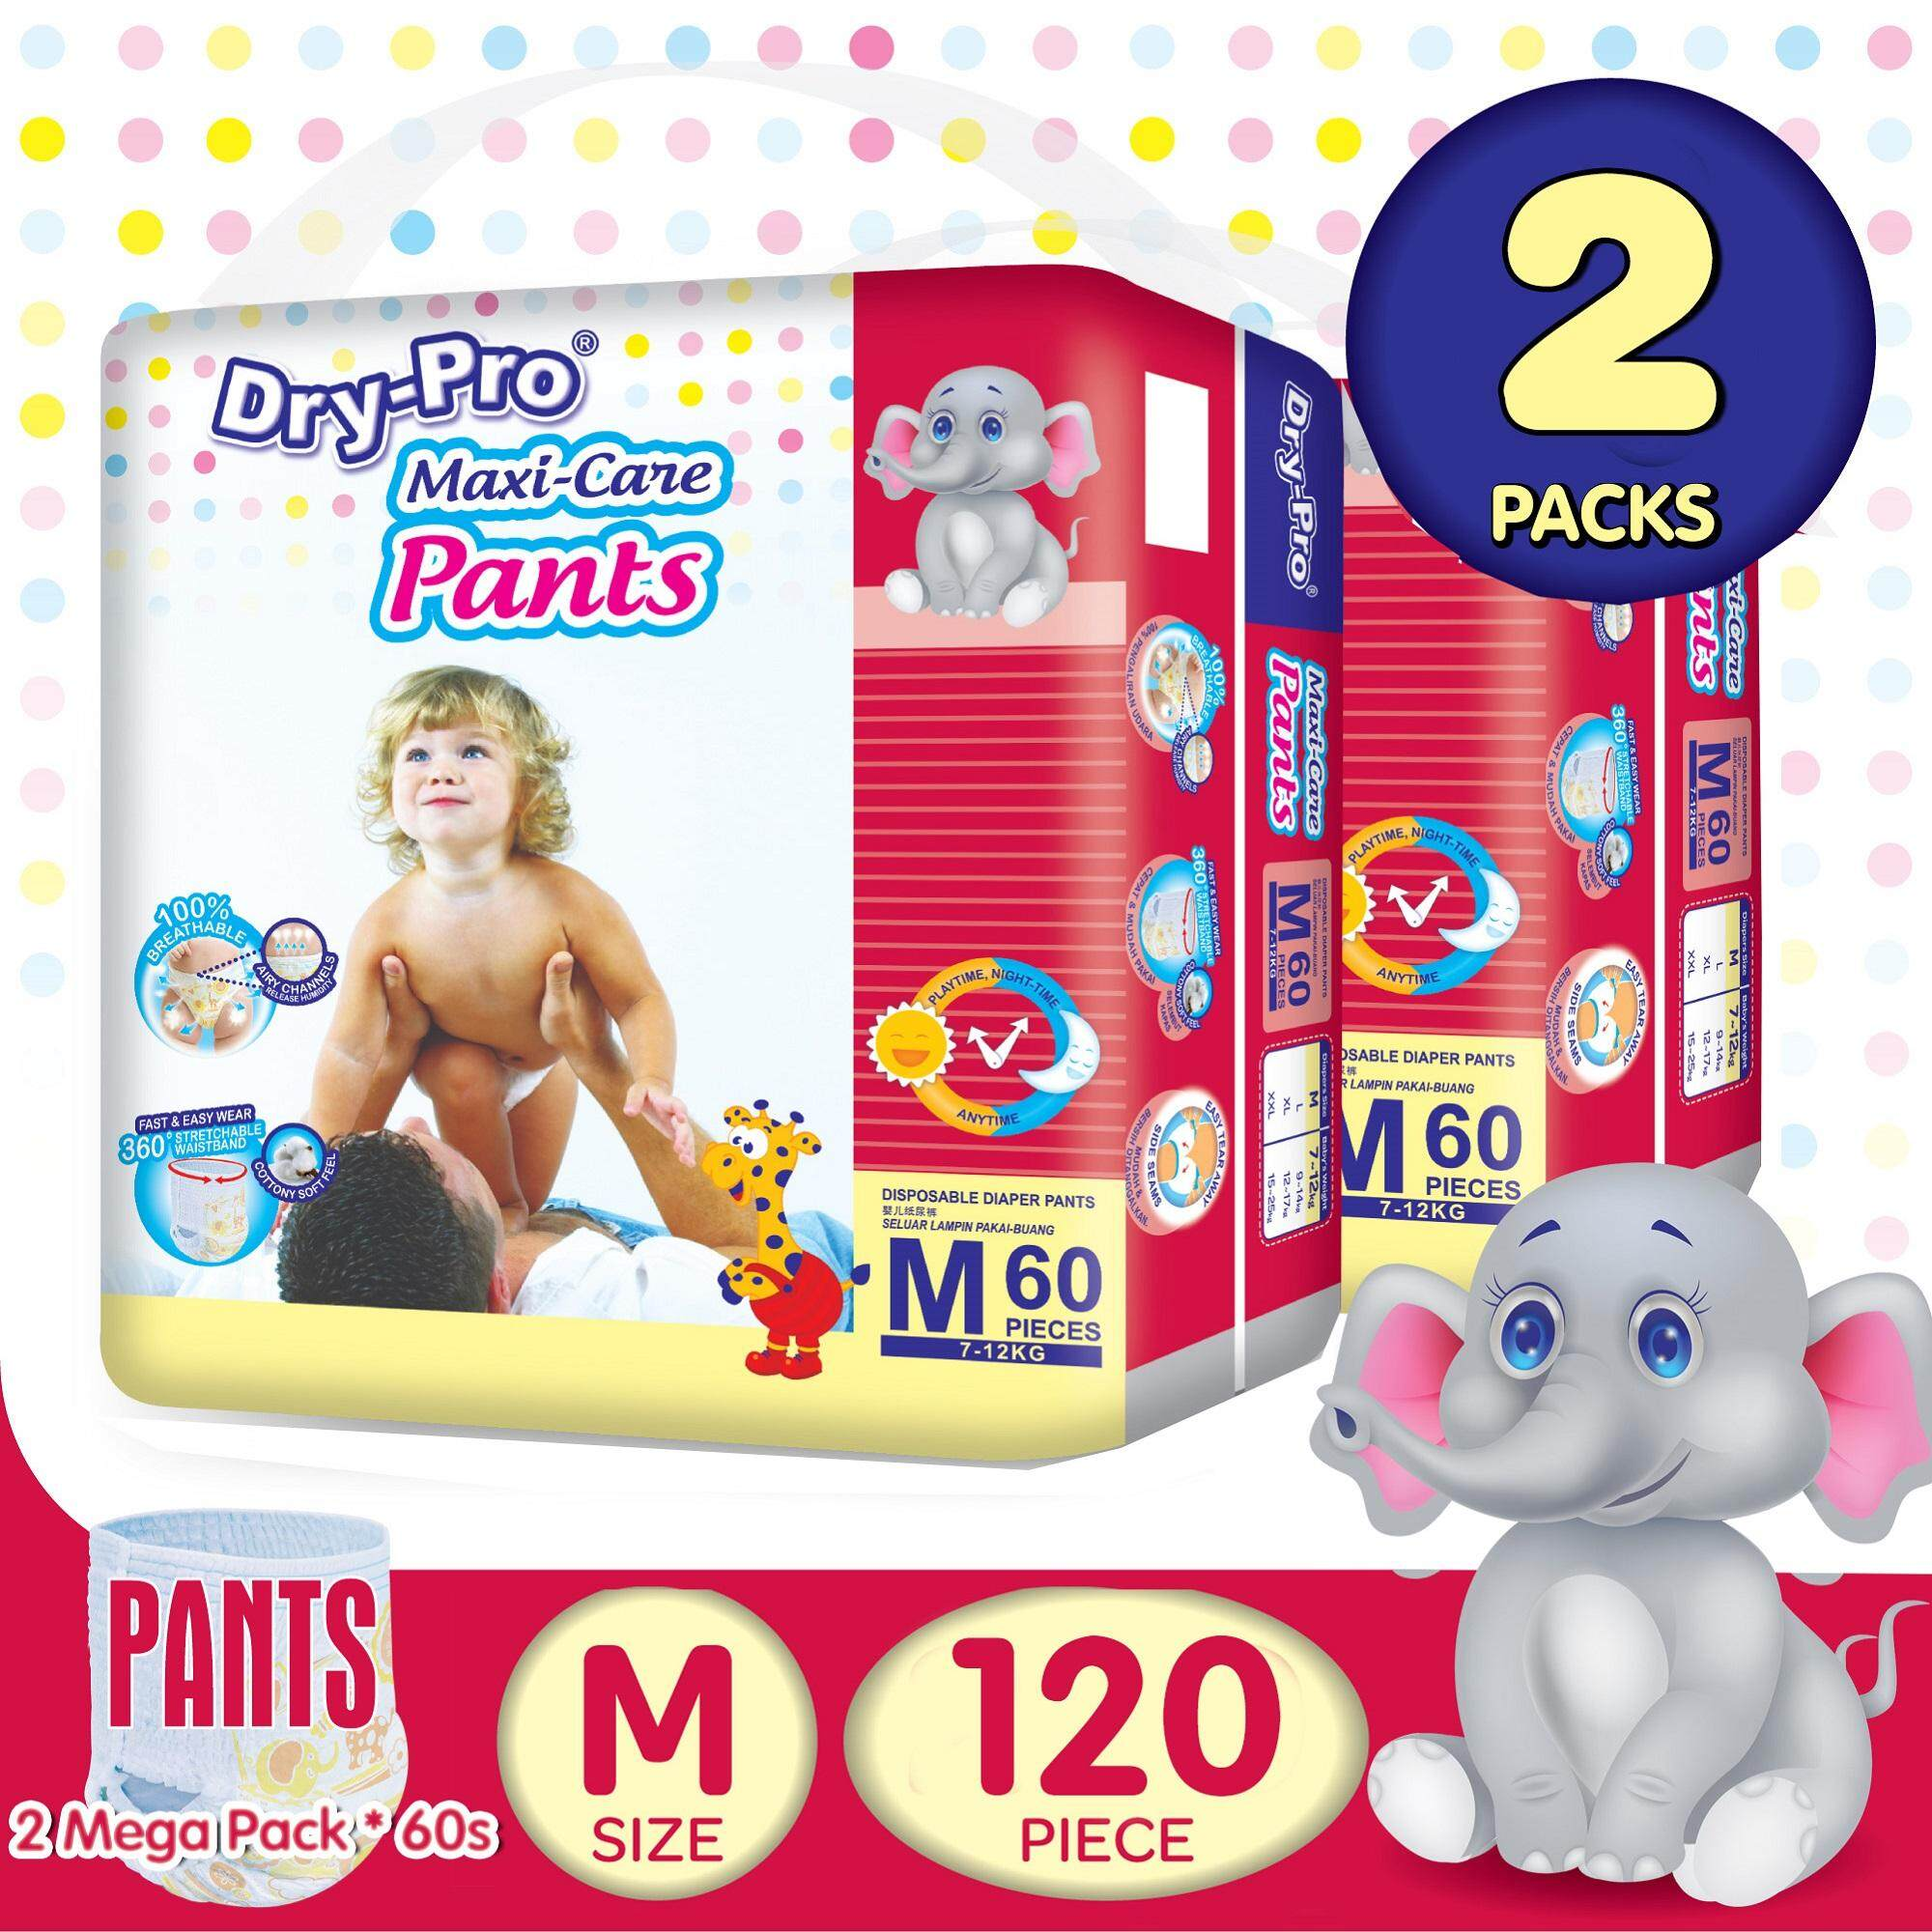 Drypro Baby Pants M60/L50/XL44/XXL36 x 2 Packs [WangZheng CARE]